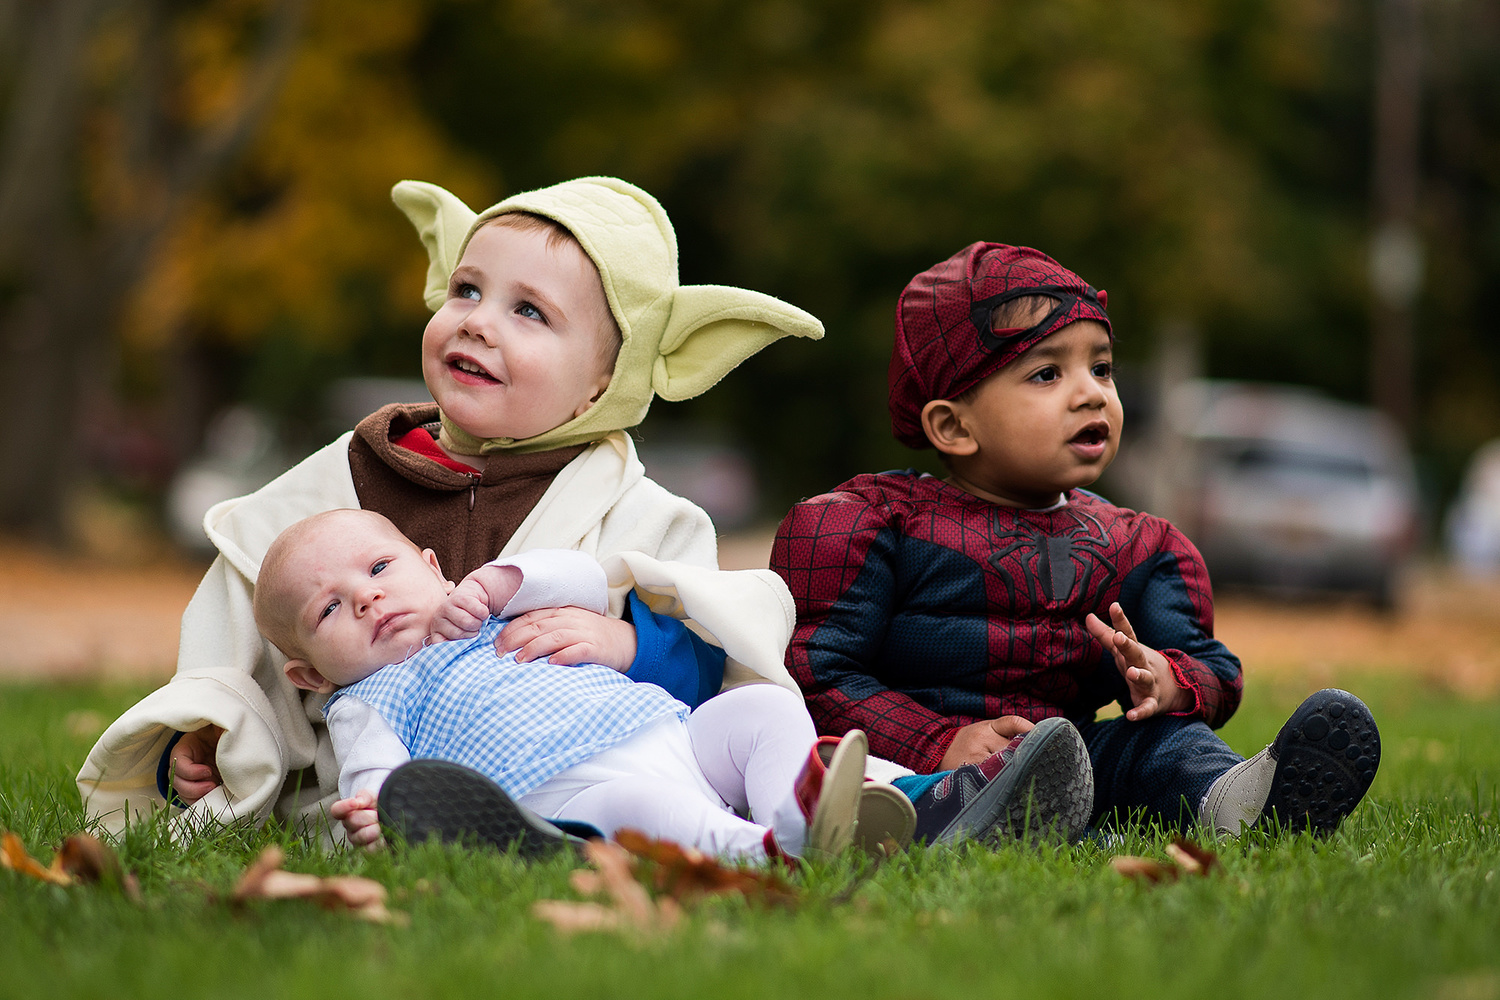 Halloween kids shot with Nikon 85mm 1.8G lens.